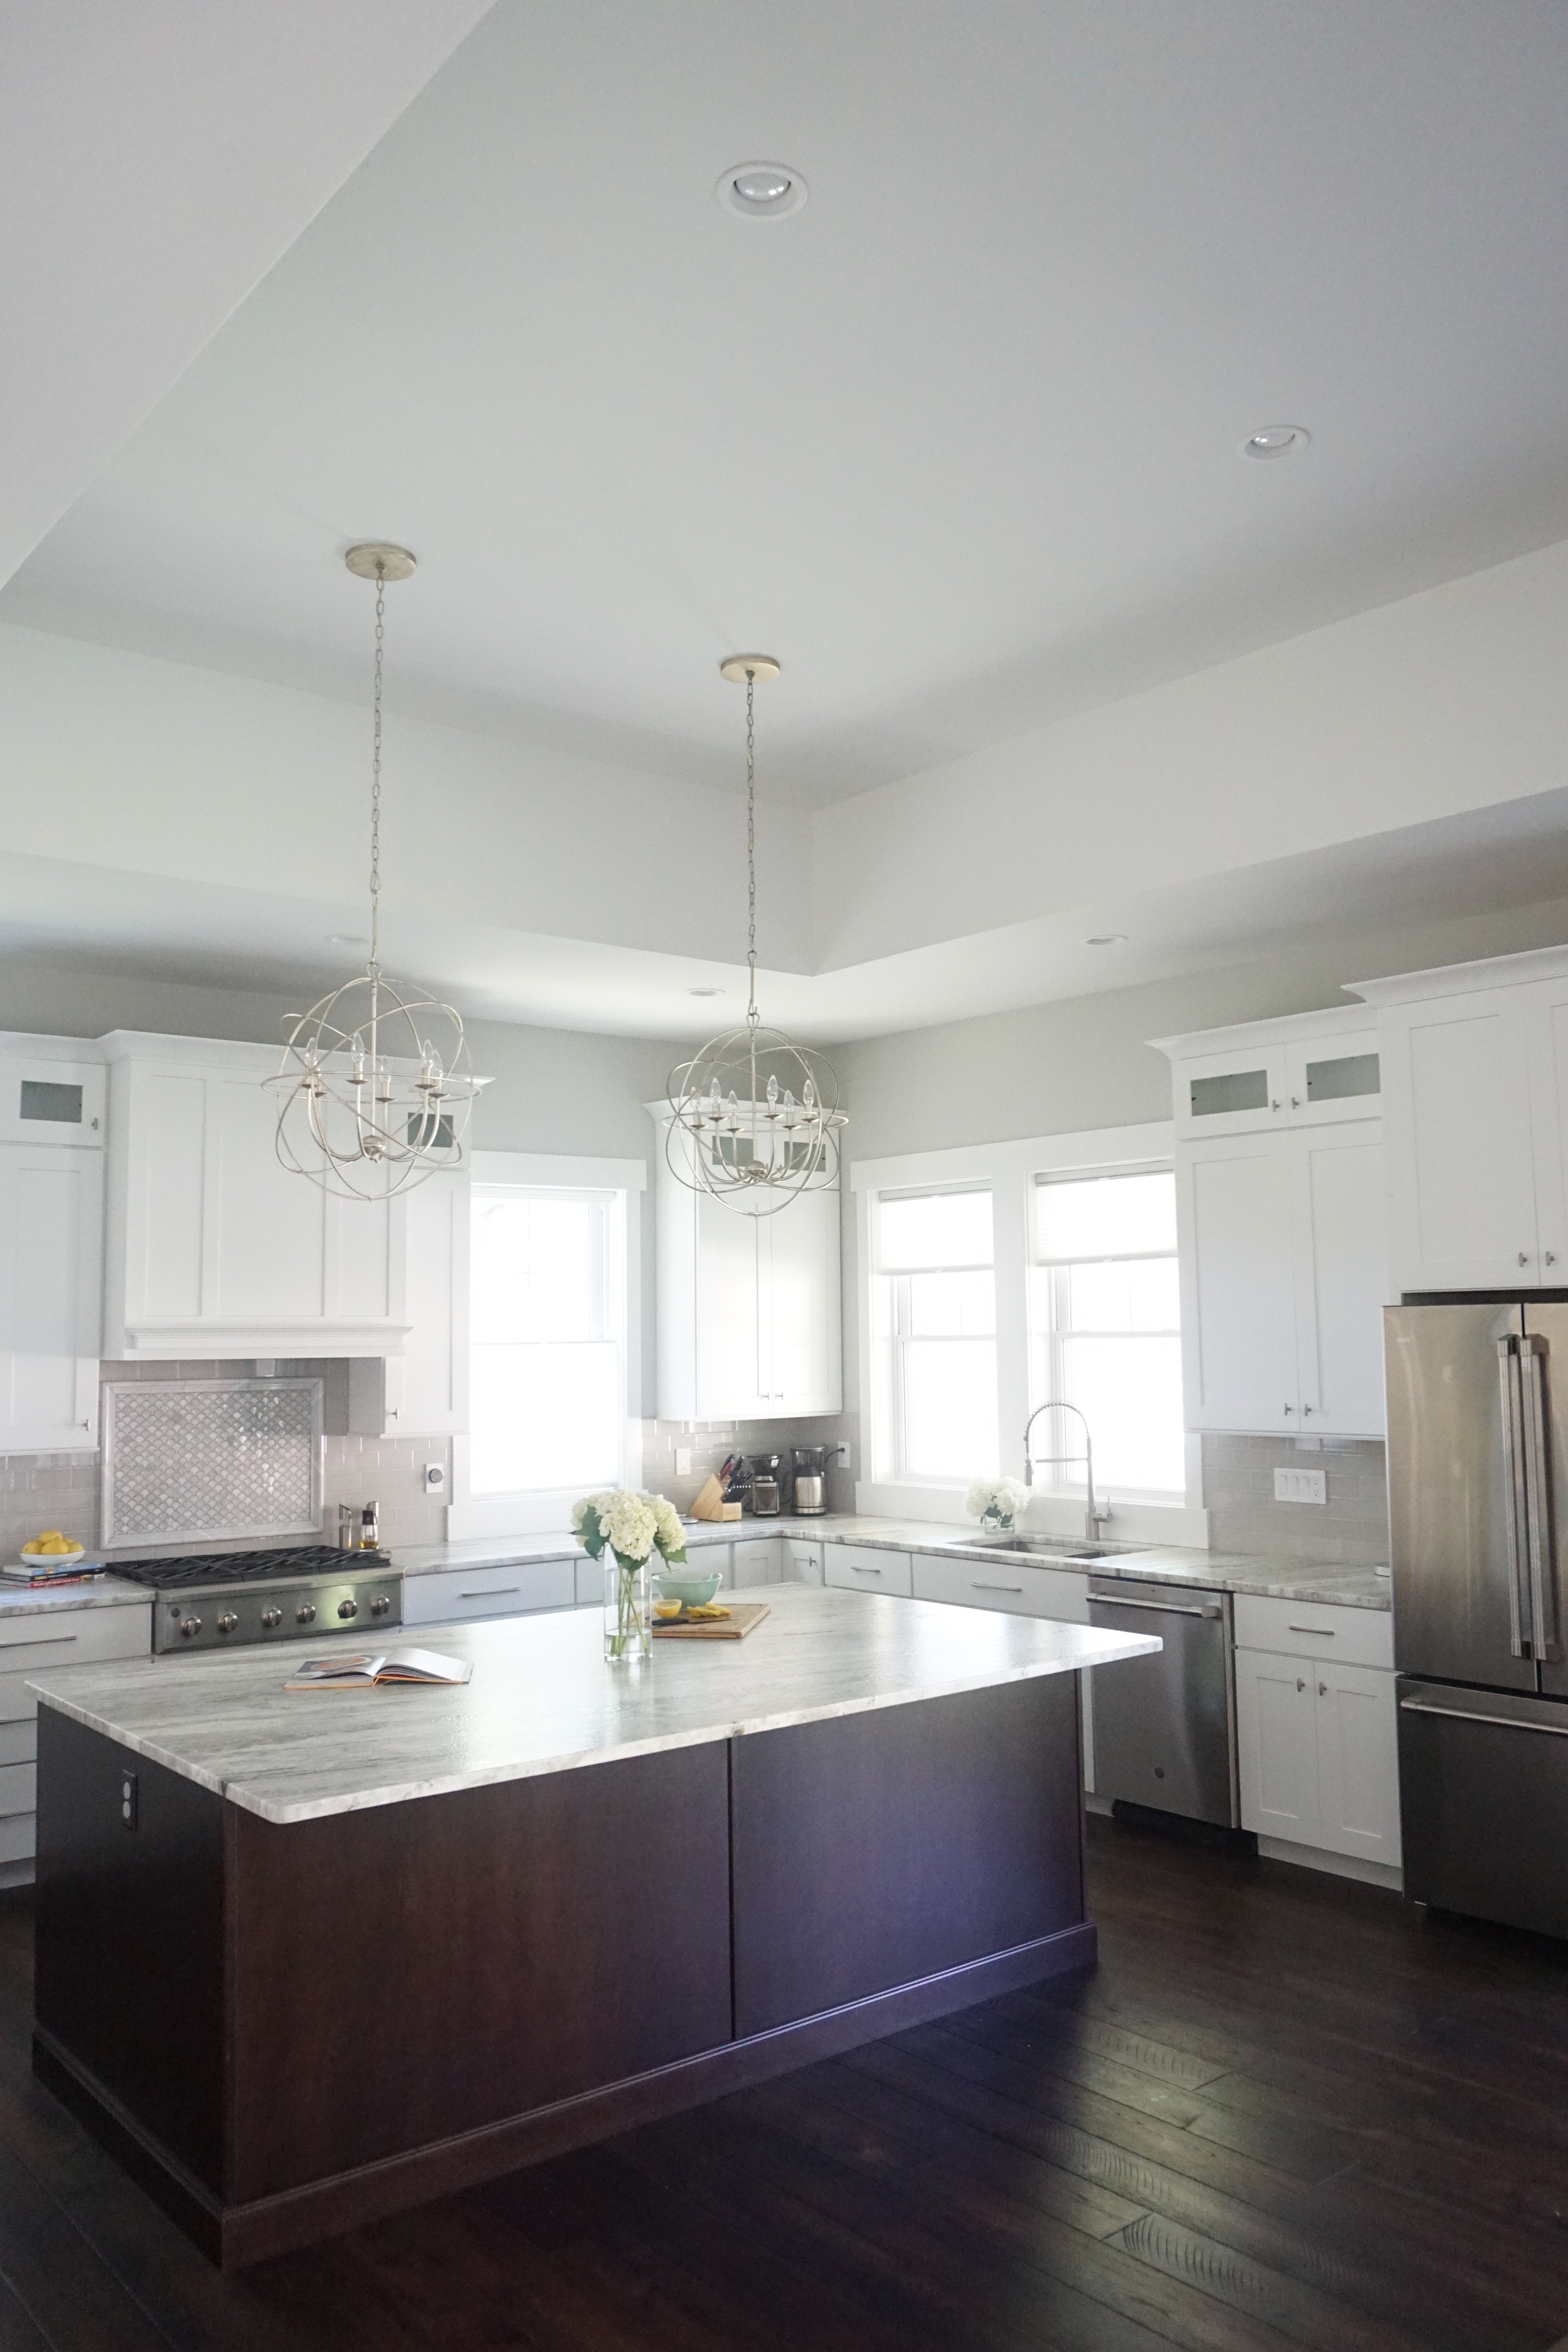 Luxe New Construction Affordable Kitchens And Baths